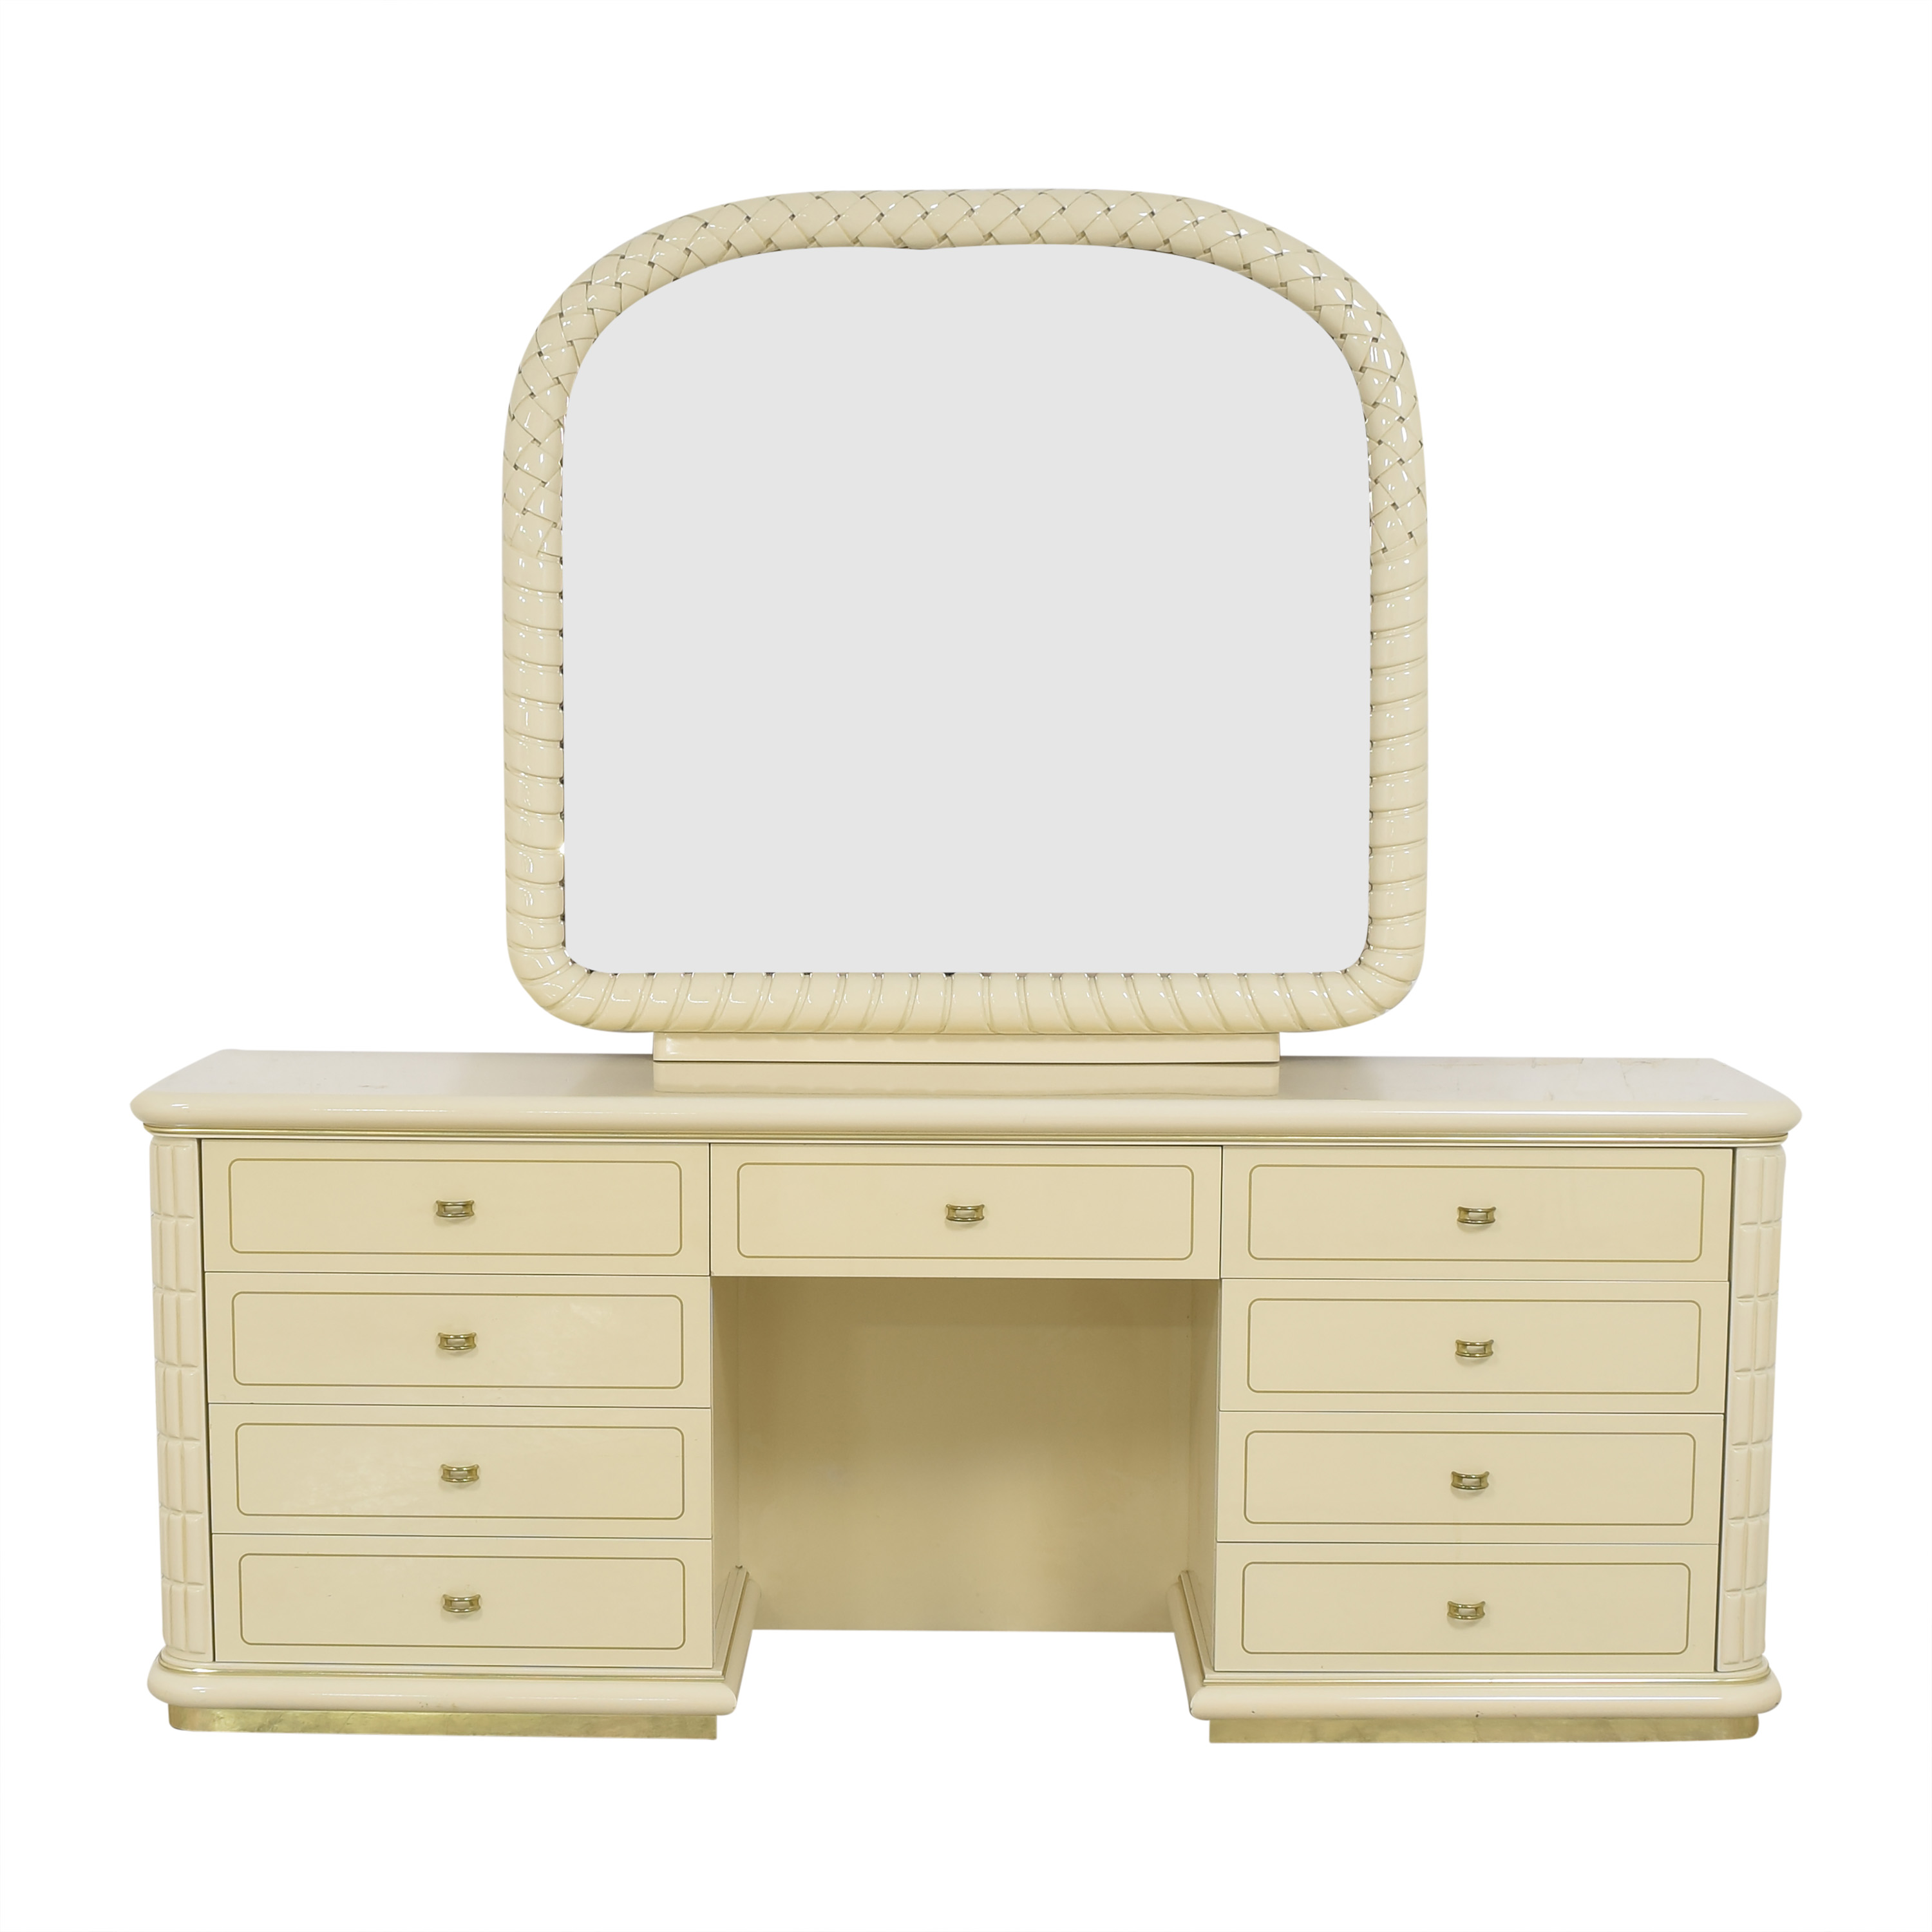 Vintage Vanity Dresser with Mirror / Storage